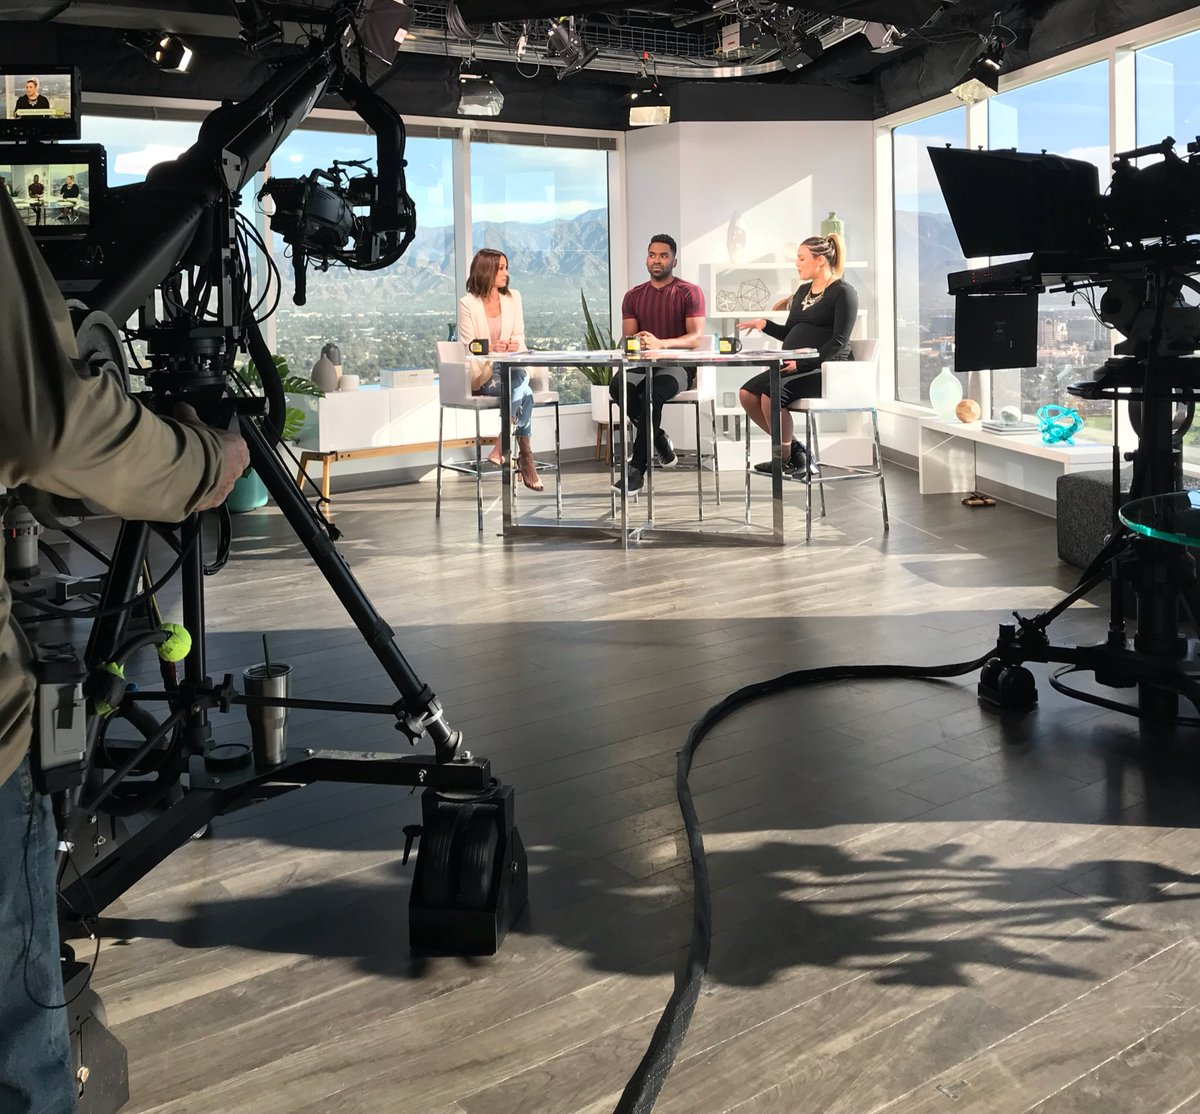 East Coast and West Coast: I'm about to be live on @enews #DailyPop! Watch now 😍 https://t.co/8mXGKCsQ4q